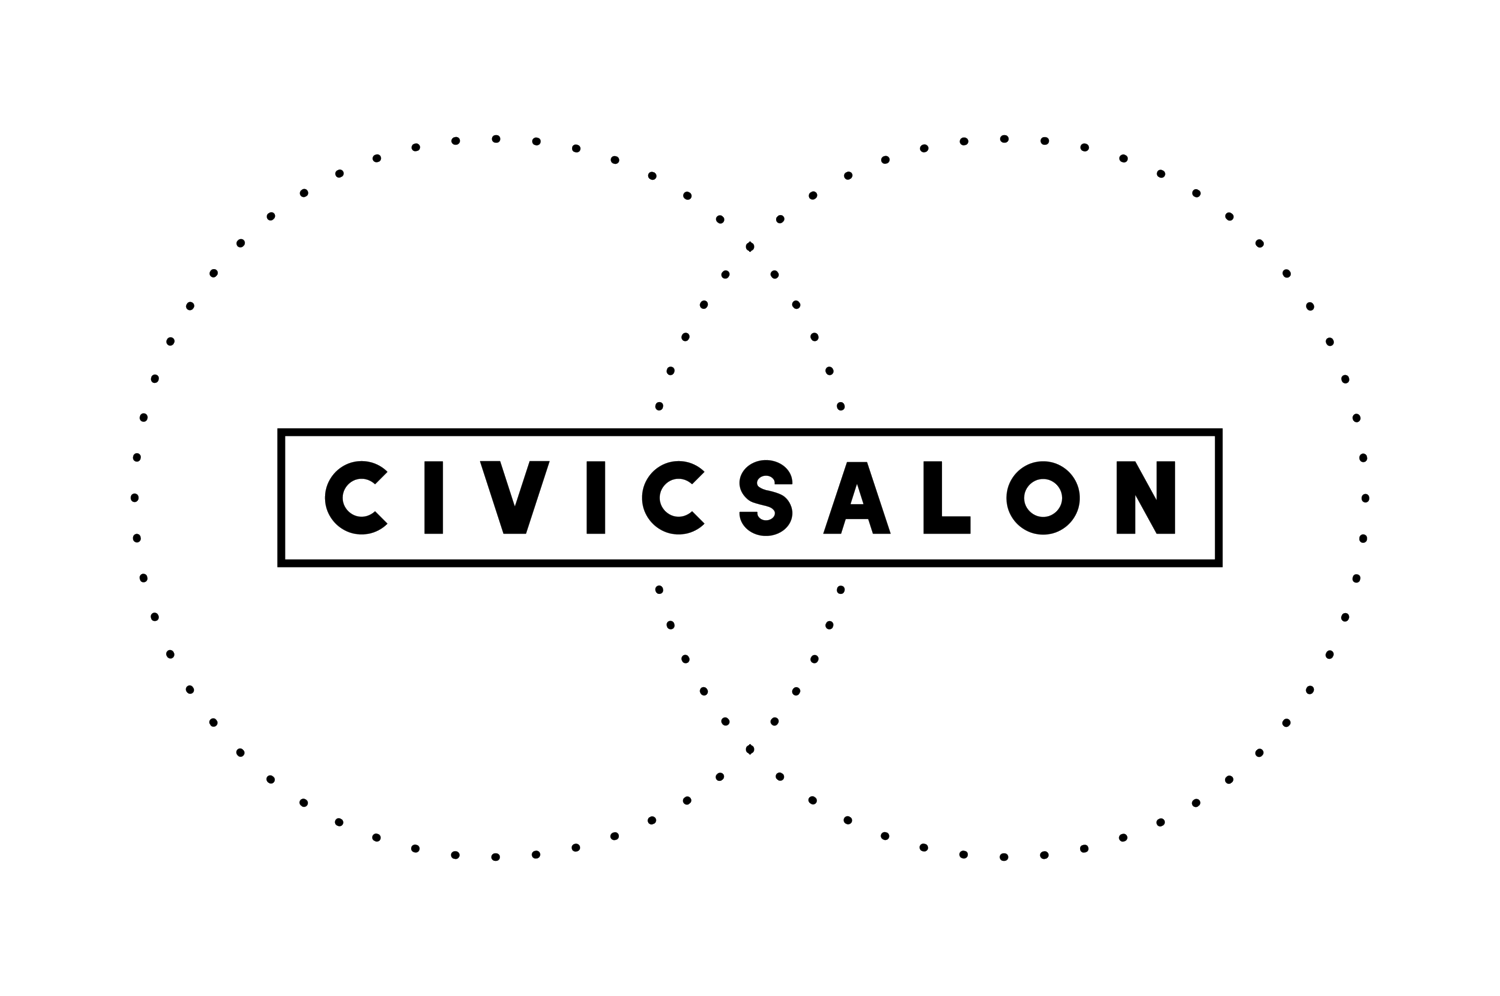 Civic Salon